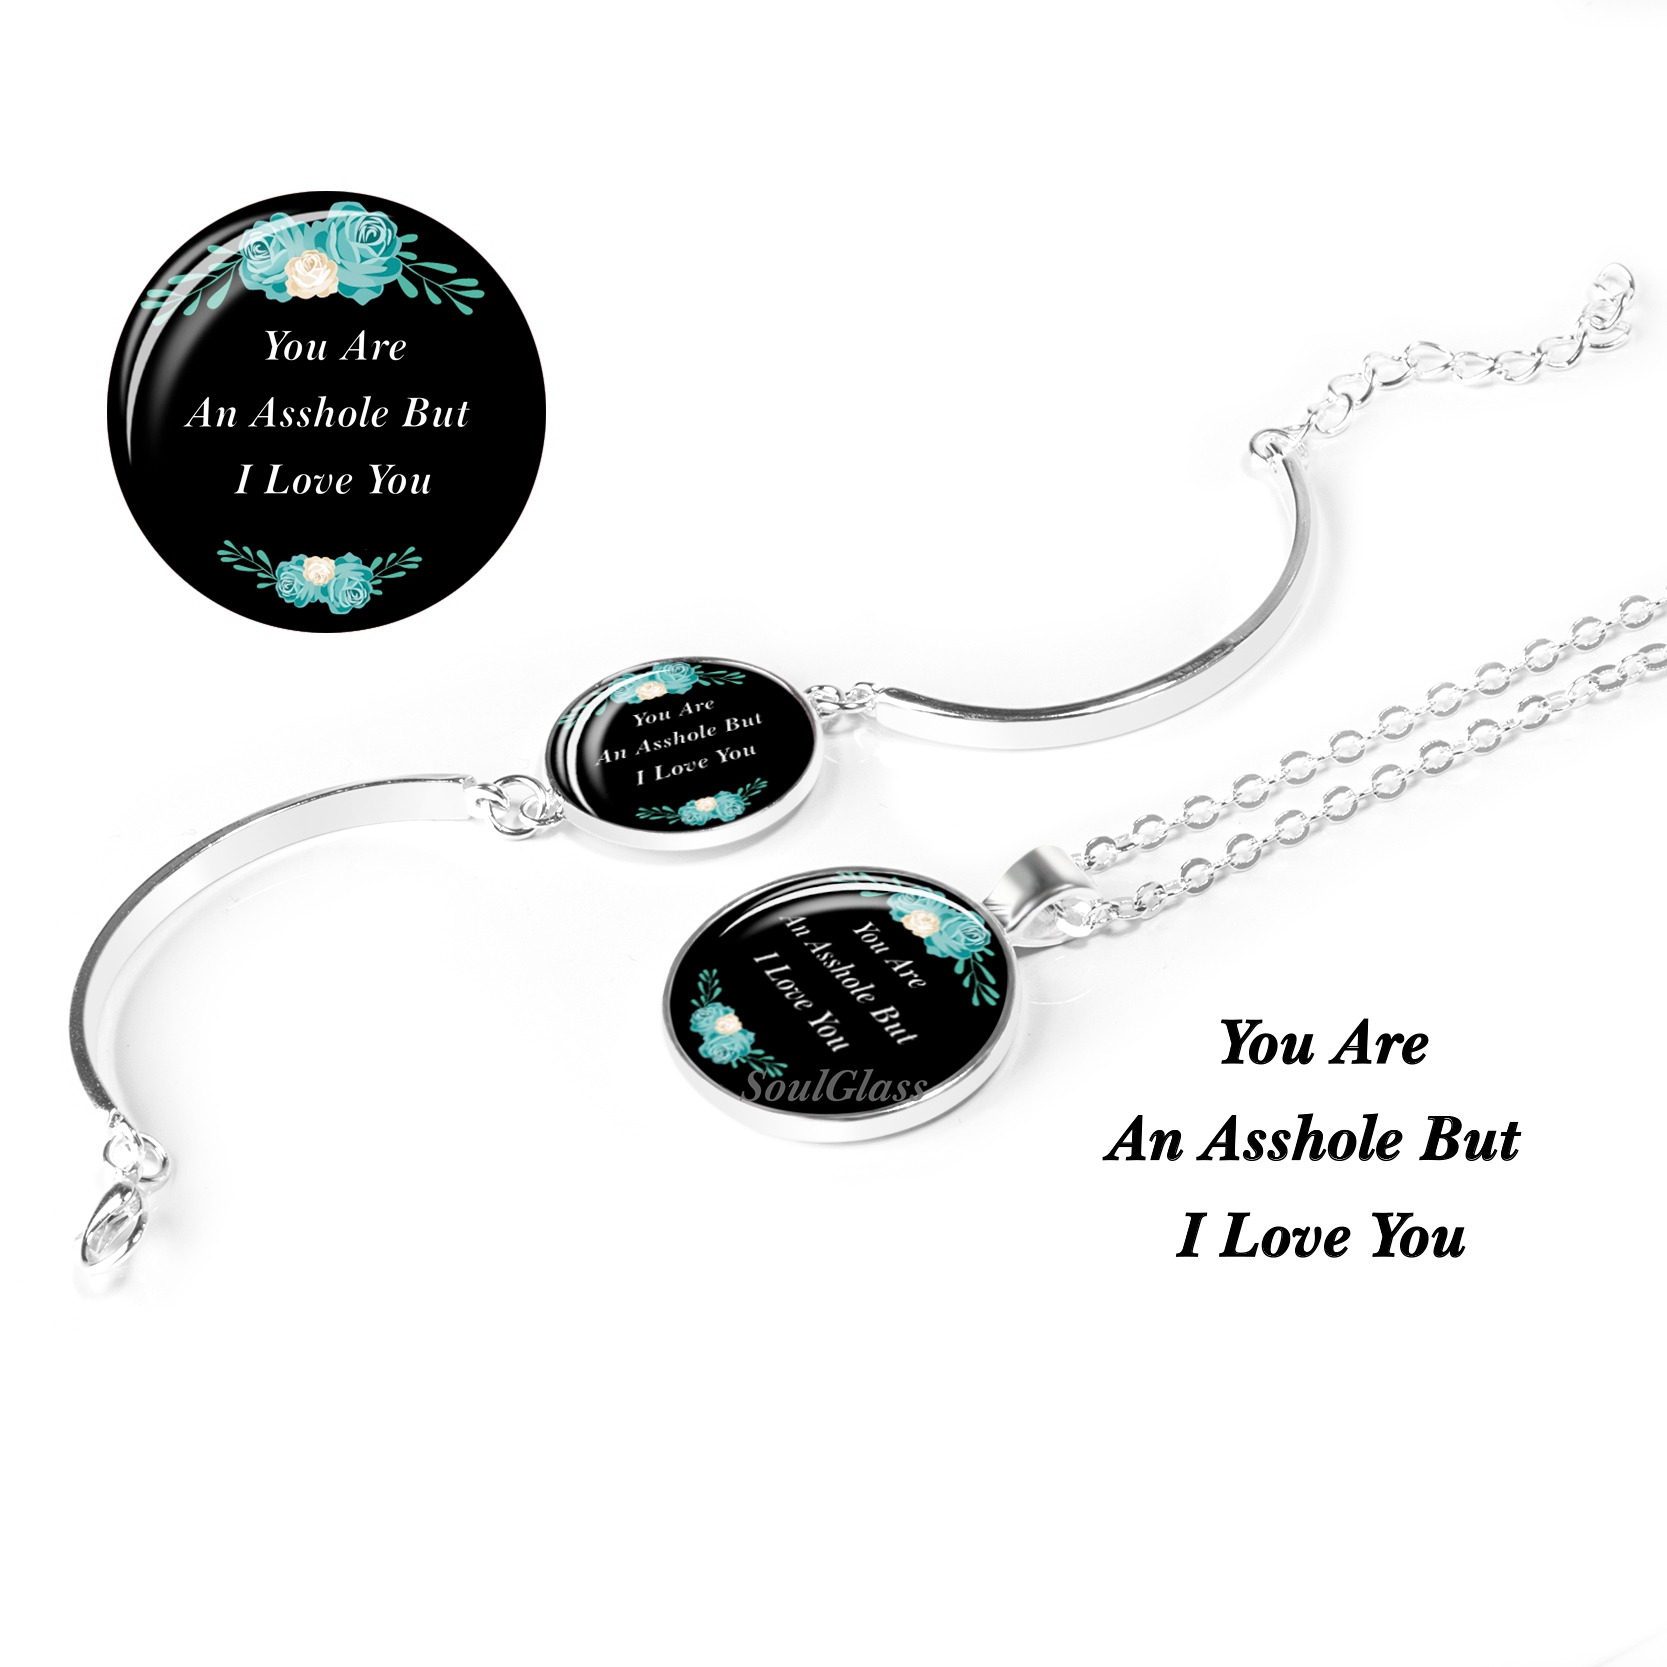 1 Set You Are An Asshole But I Love You Fashion Charm Letter Quote Jewelry Set(2pcs) Necklace and Bracelet Dorpshipping(China)